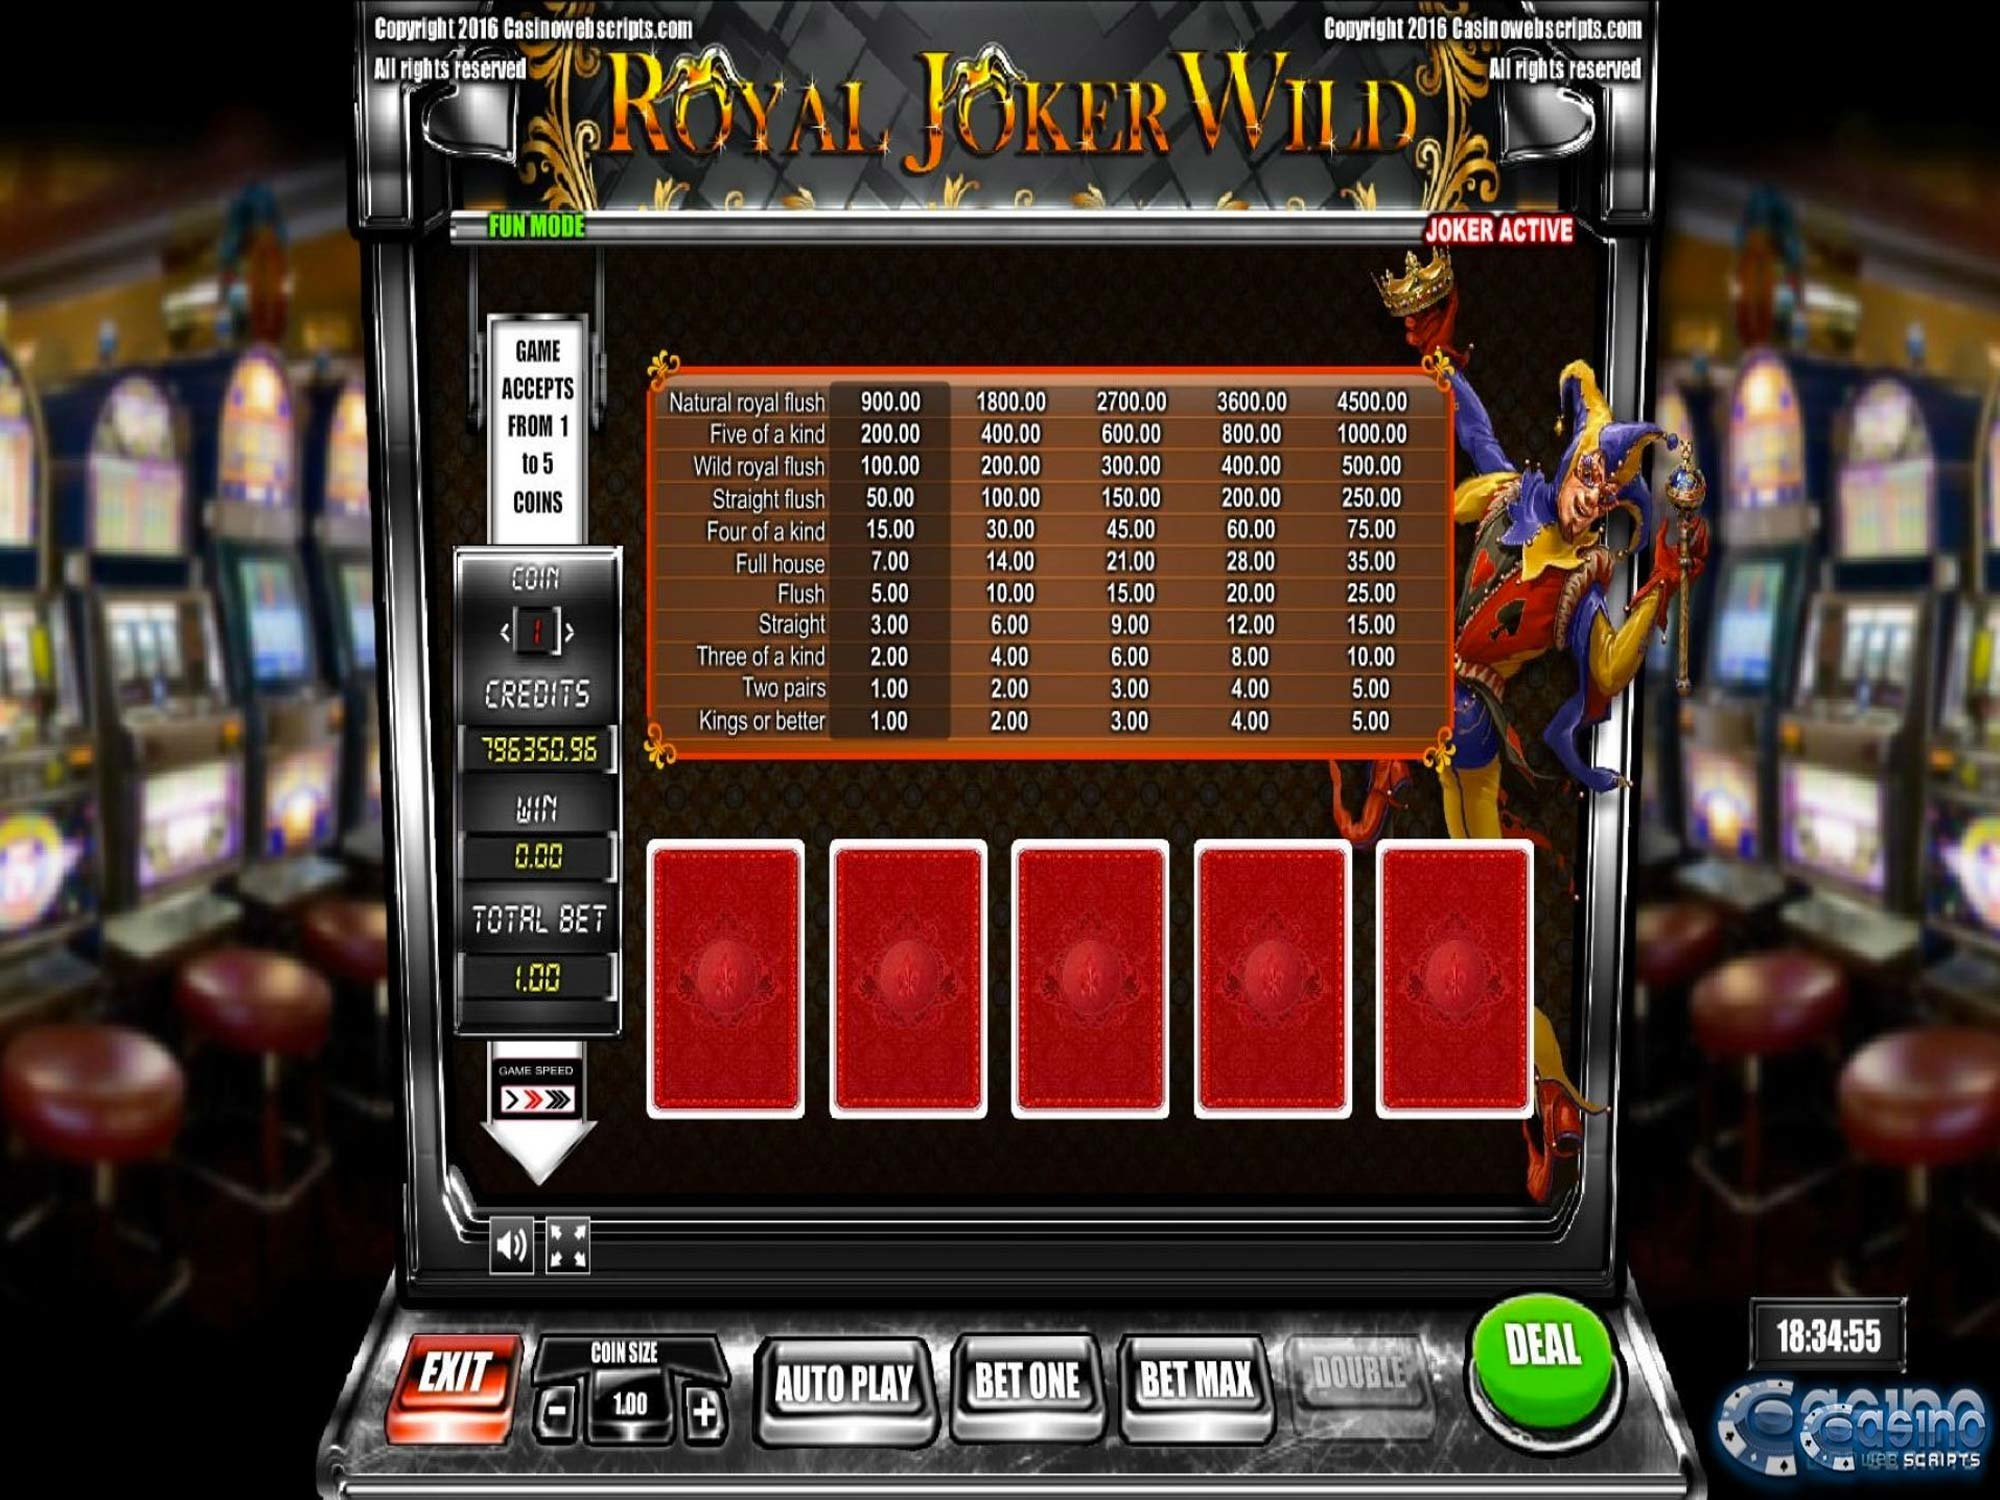 Play fortuna 50 free spins